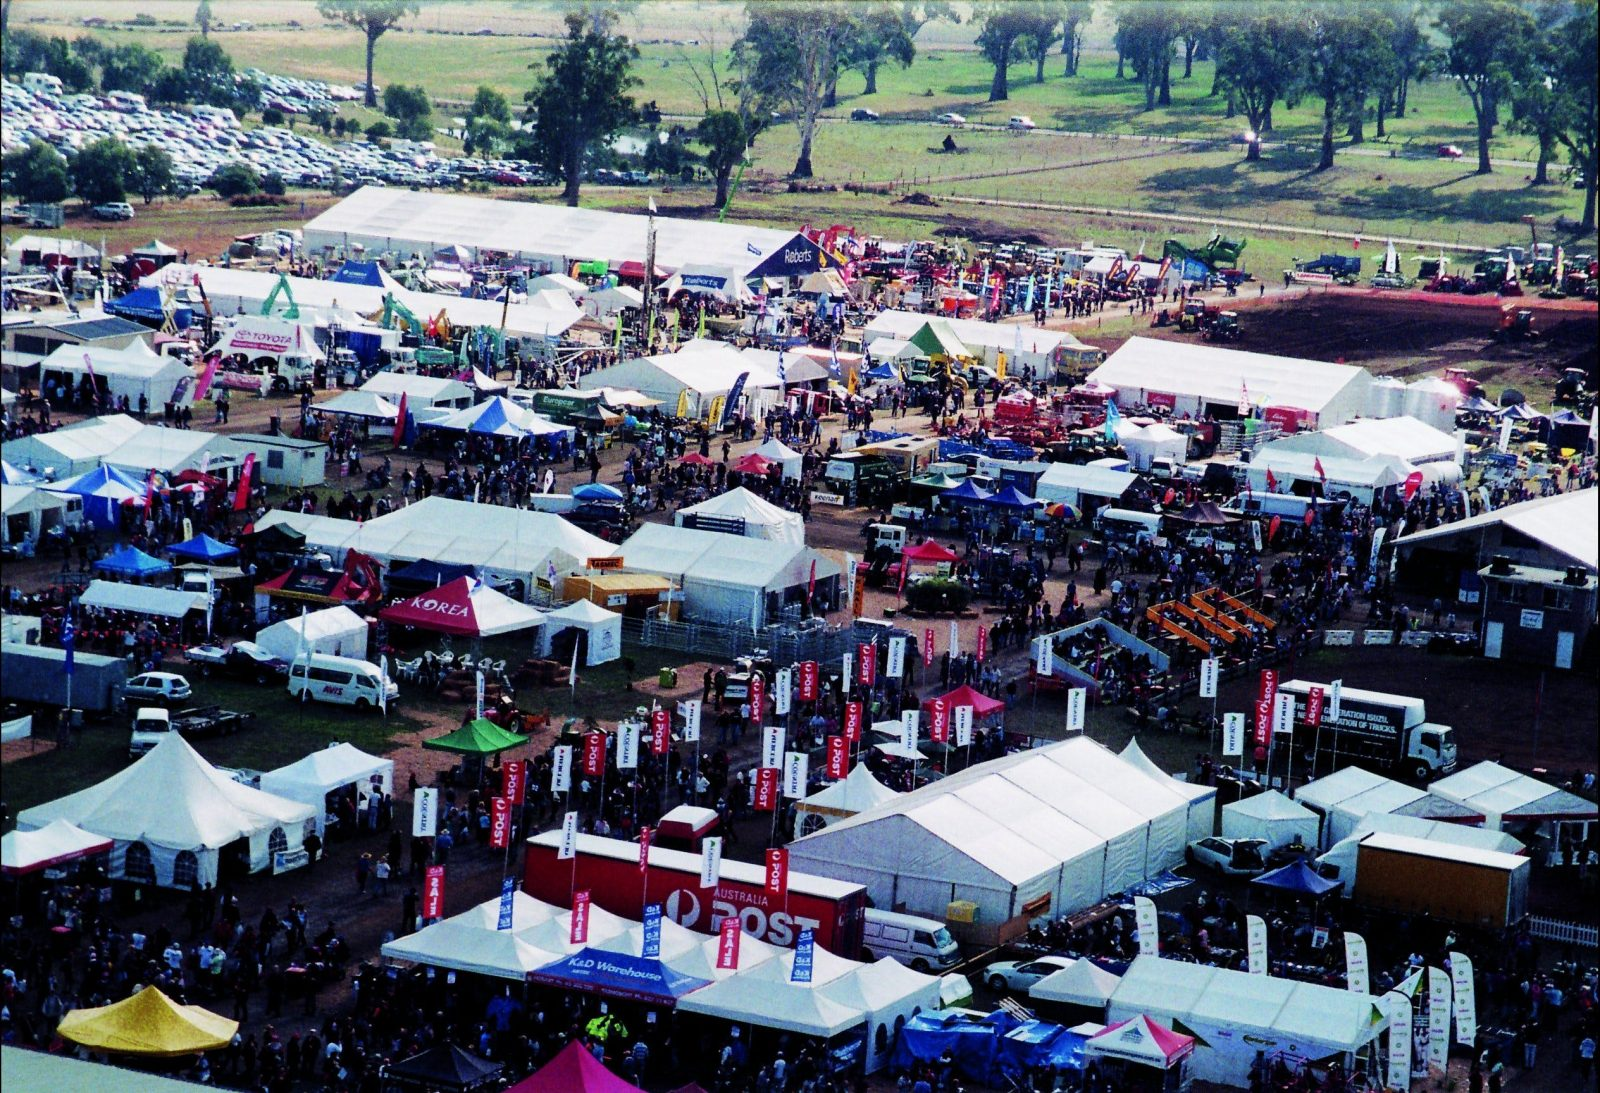 An aerial view of Agfest